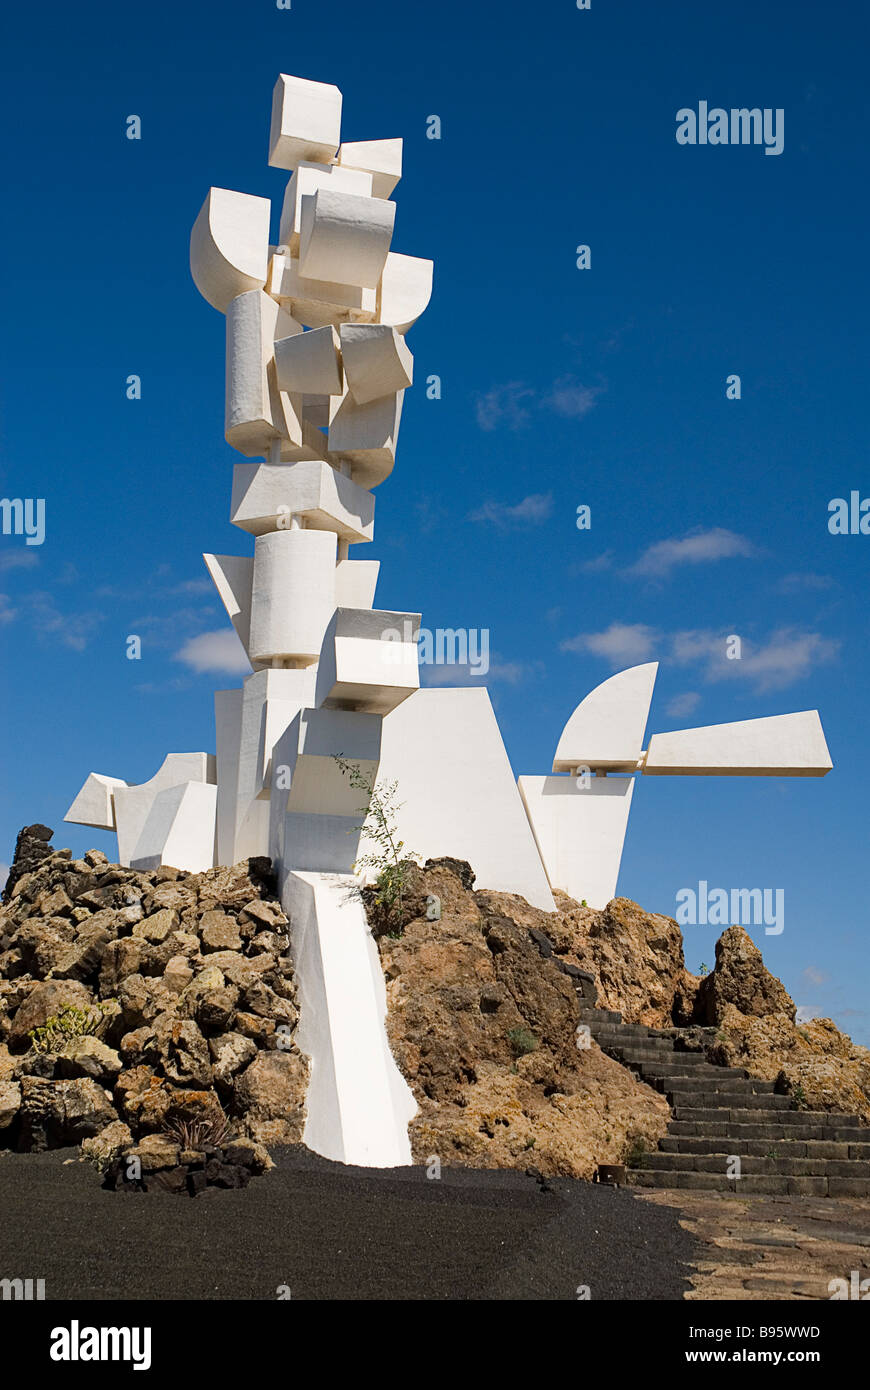 Spain, Canary Islands, Lanzarote, Monumento a La Campesino, the Monument to the Farmer. - Stock Image